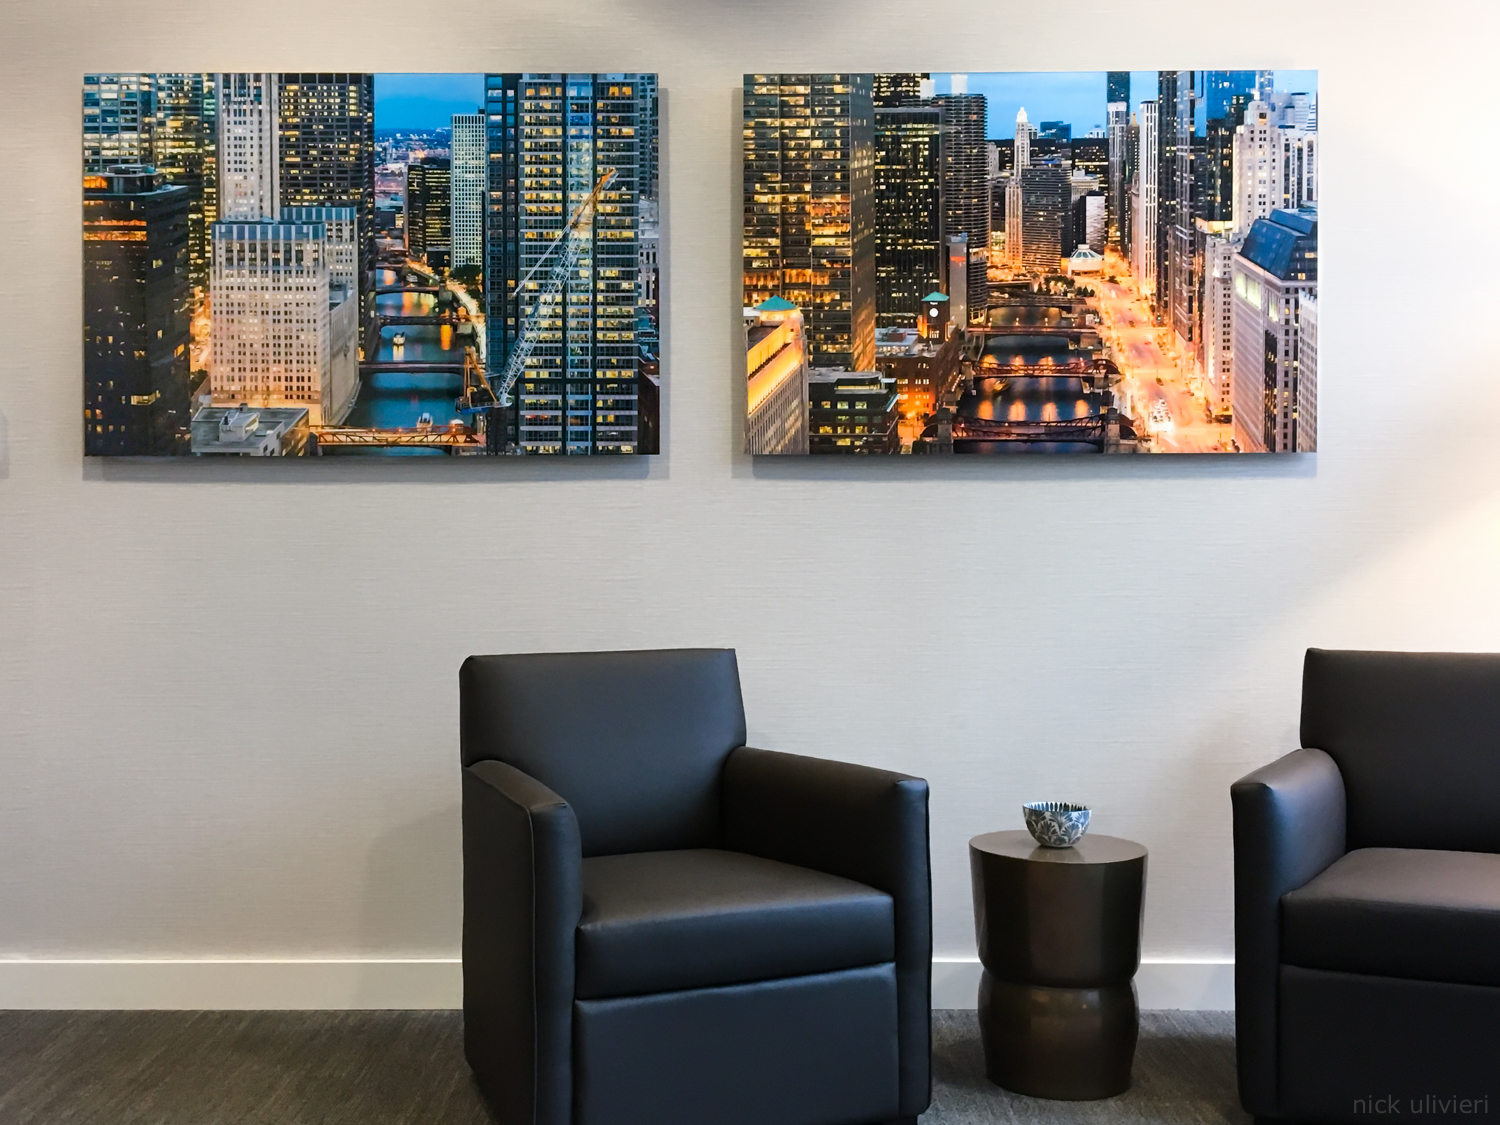 acrylic prints made at Artmill.com - photography by Nick Ulivieri